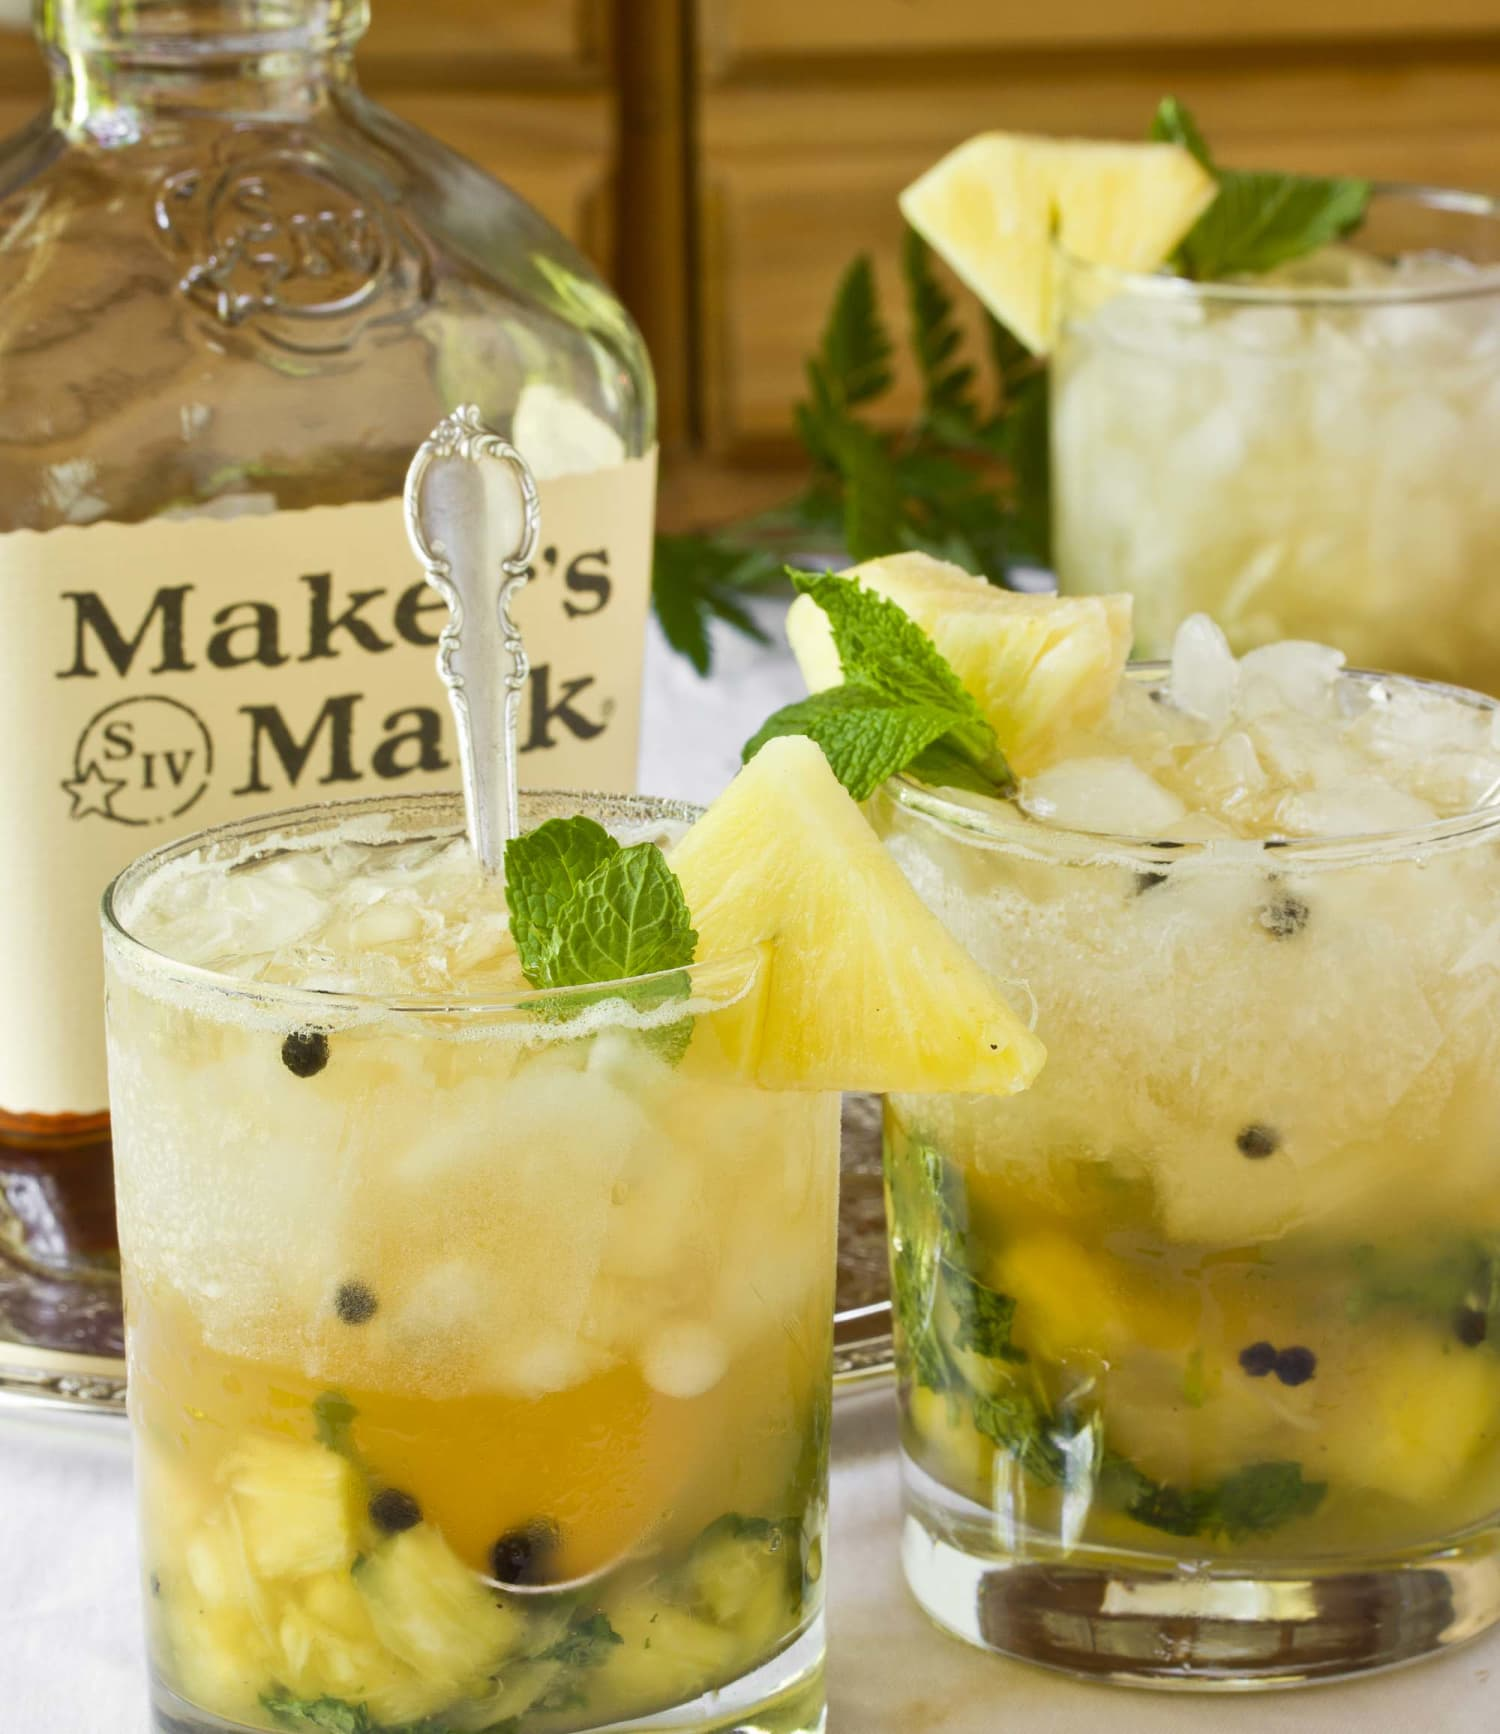 Ginger-Mint Juleps with Fresh Pineapple Are a Sweet & Spicy Take on the Classic